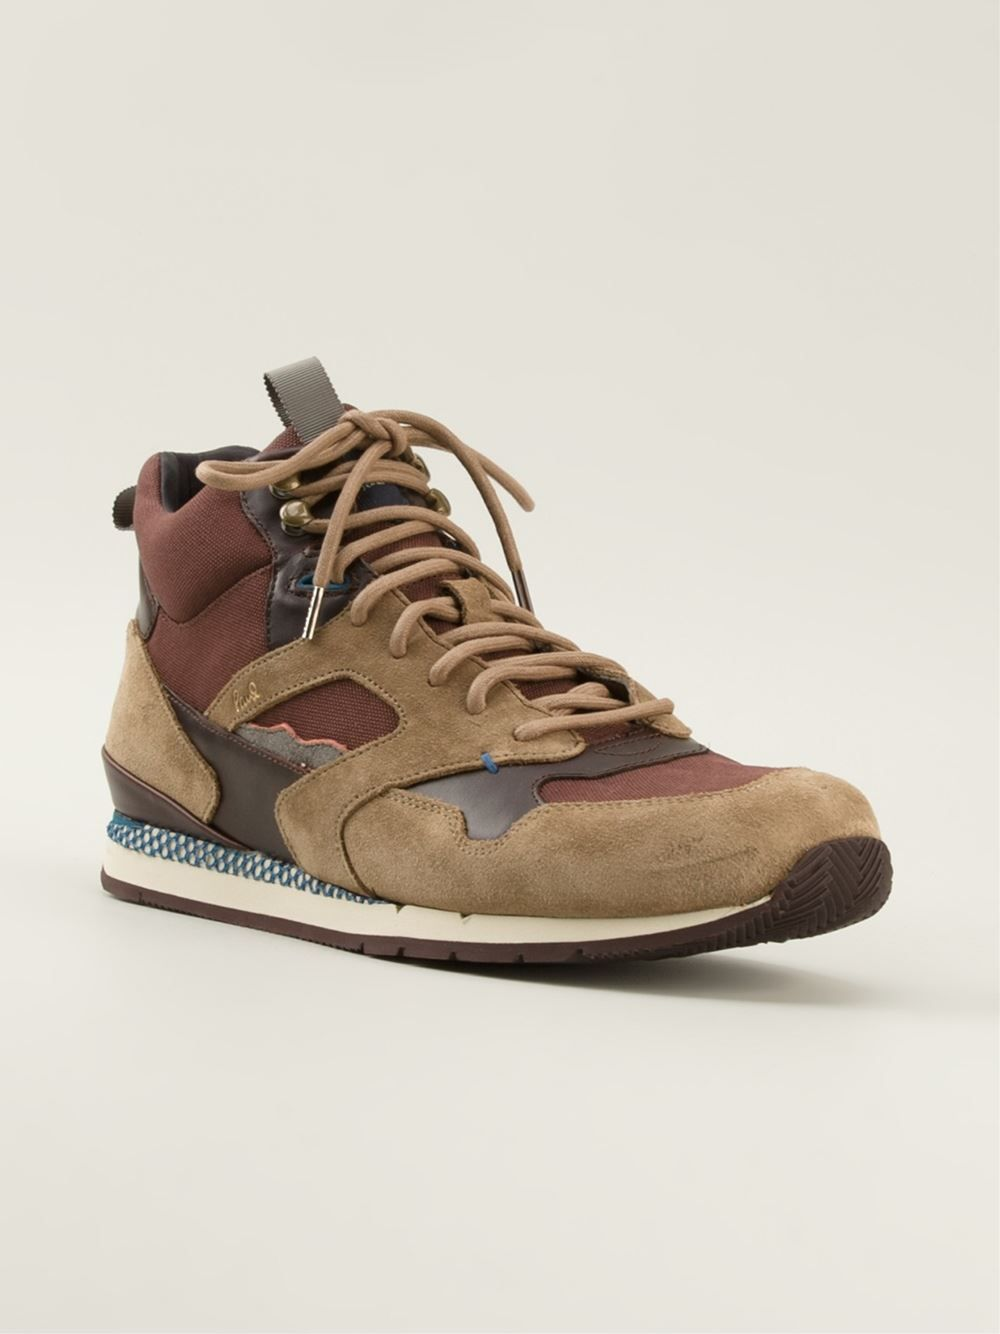 Paul Smith Jeans Hi-top Sneakers